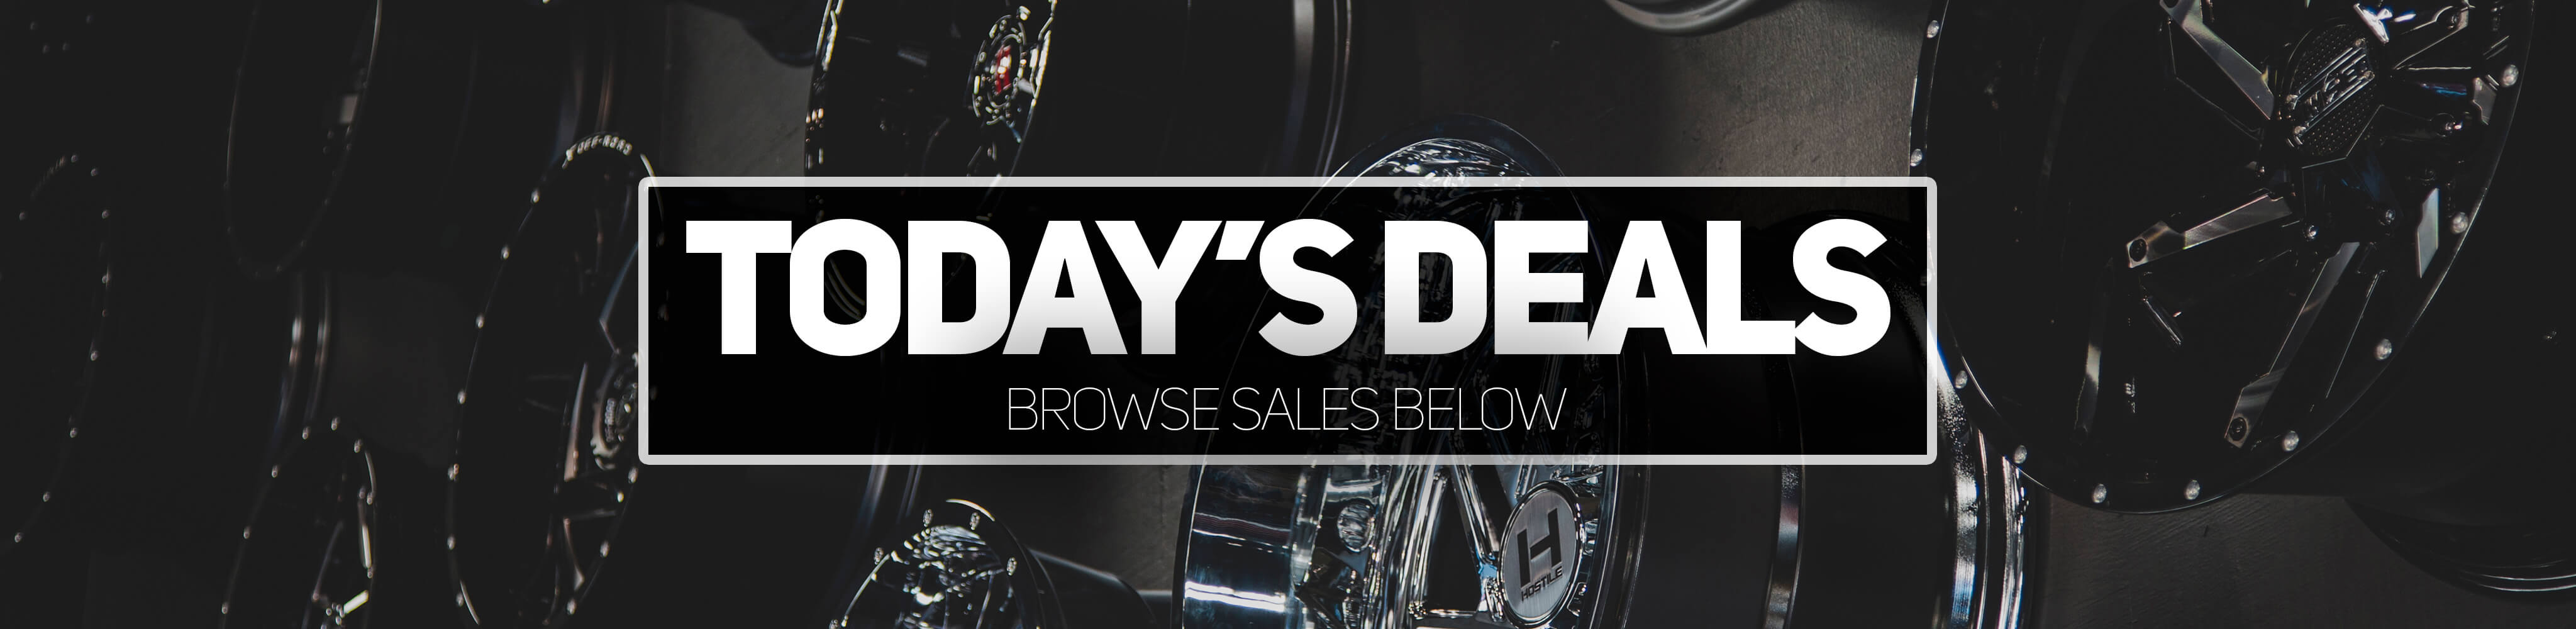 Today's deals, browse our sales below